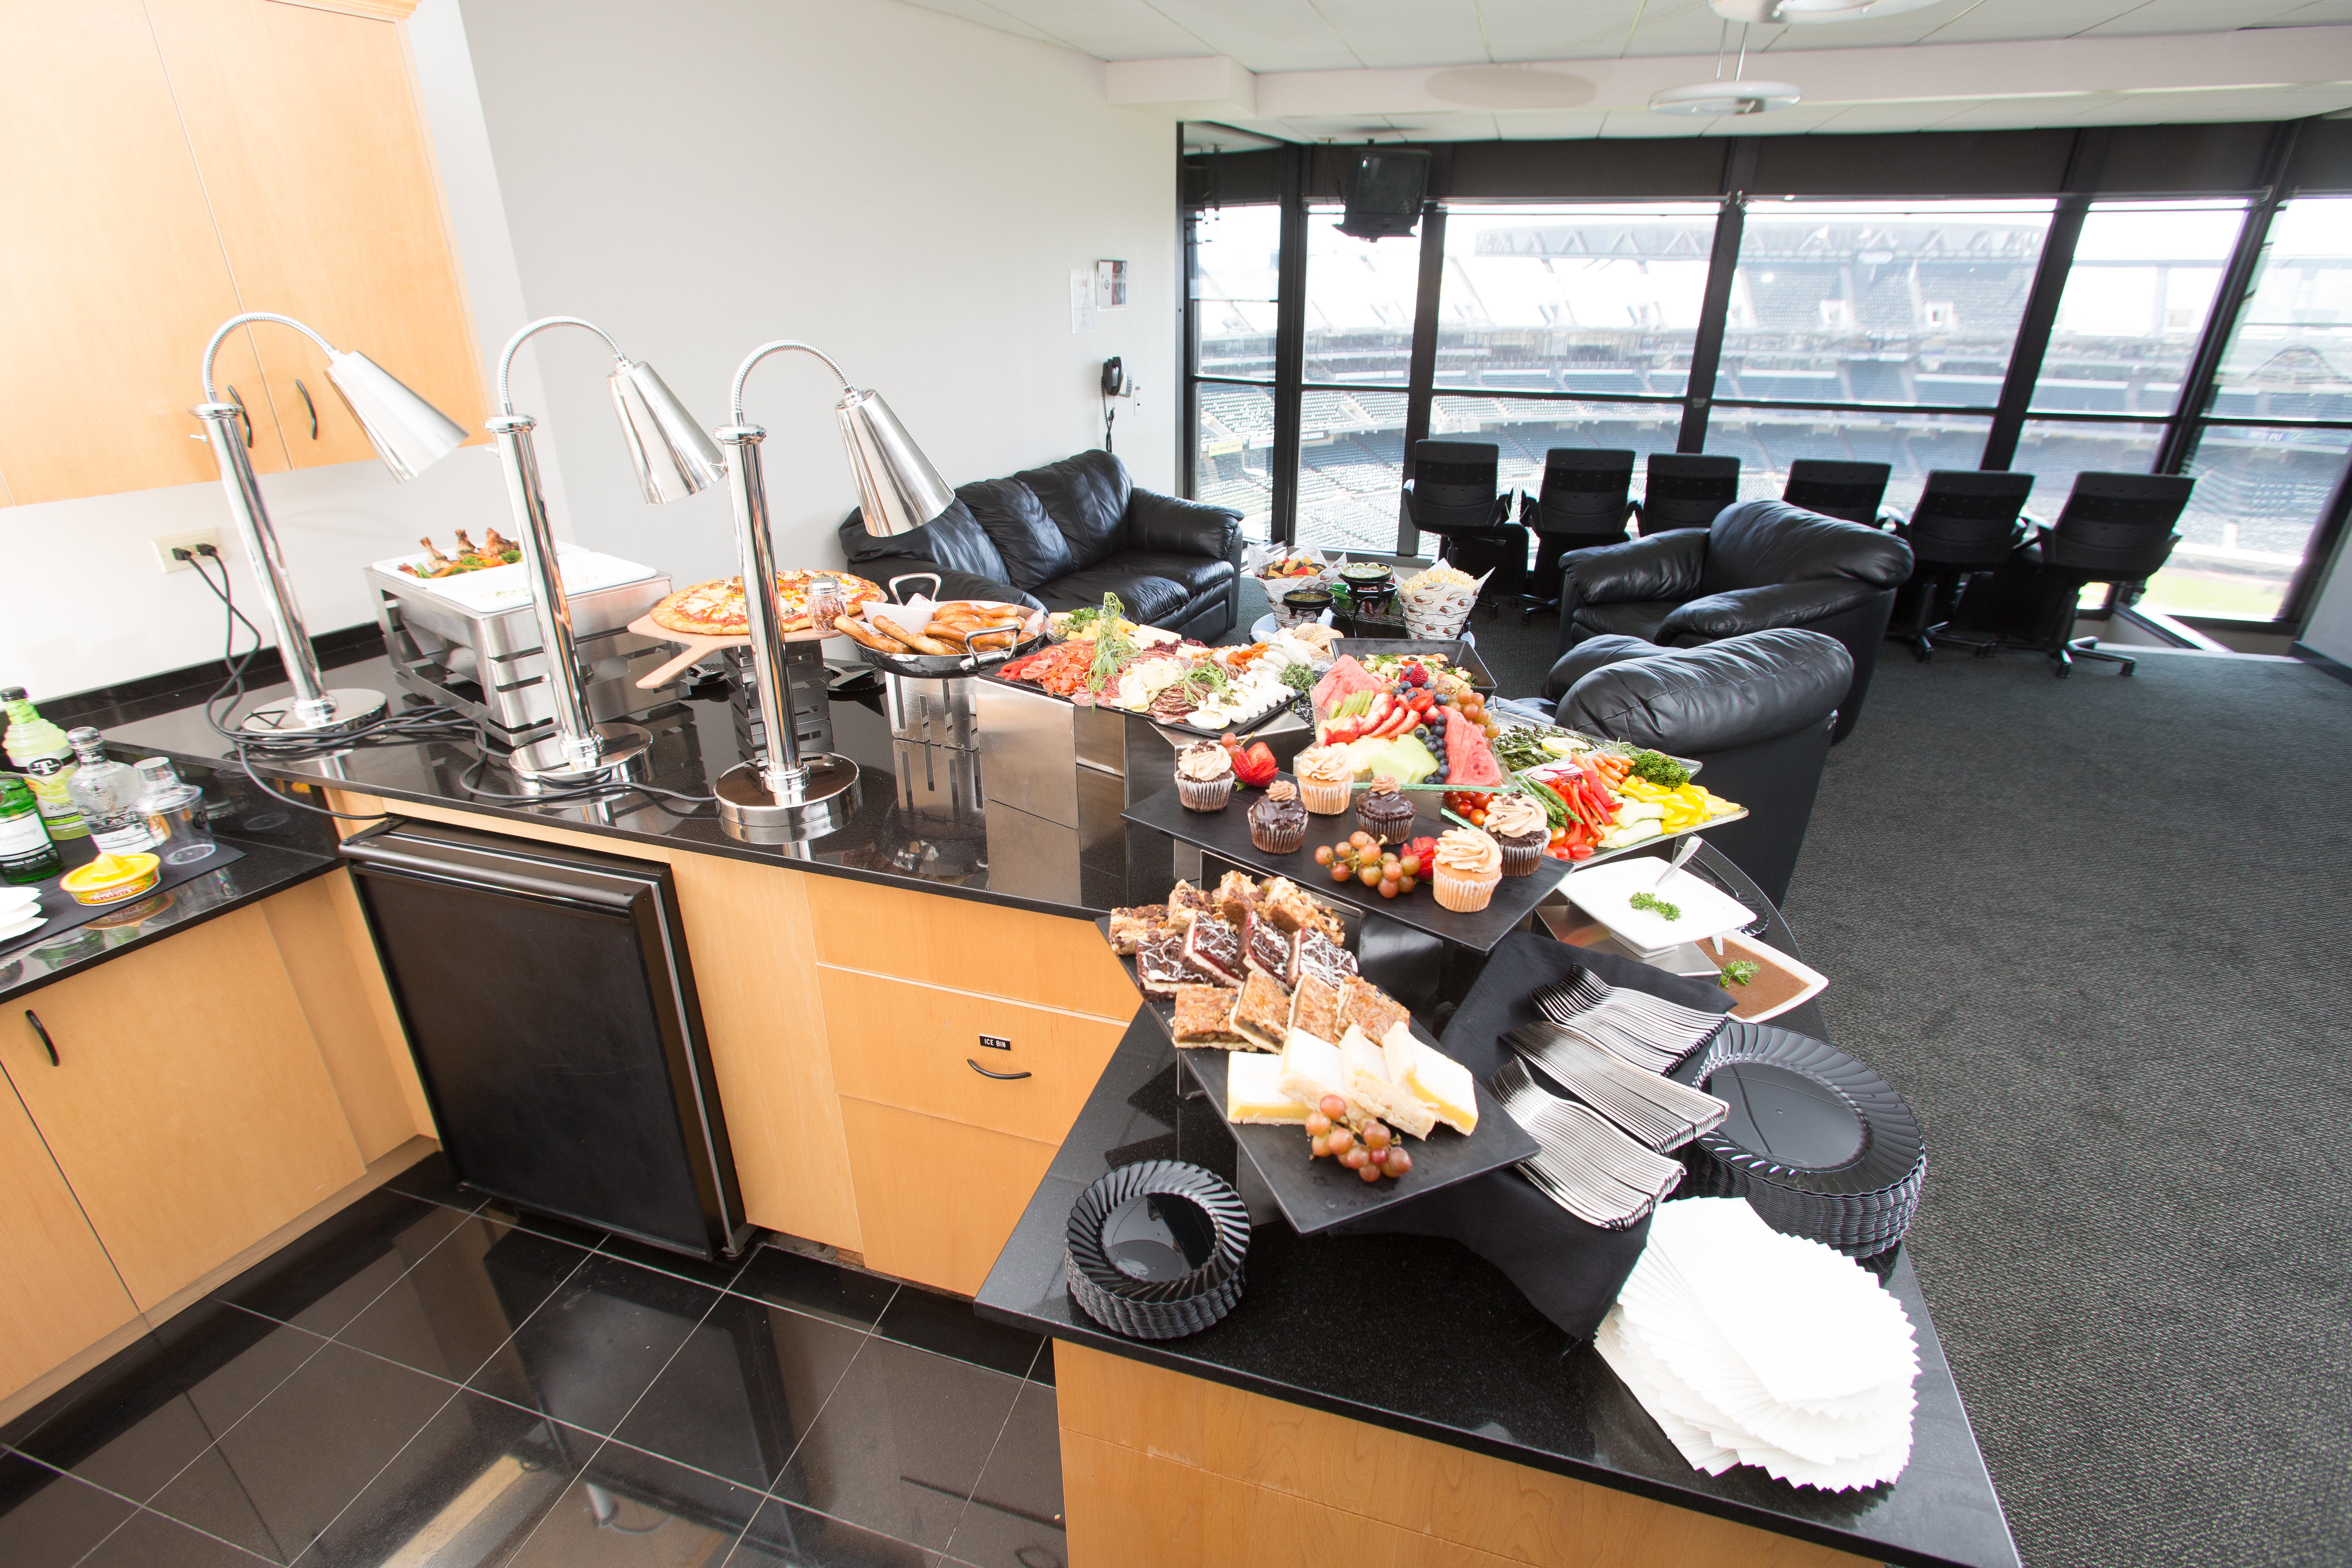 State warriors oracle arena and oakland alameda county coliseum - The Suite Life Luxury Suites Are A Great Way To Enjoy Events At Oakland Alameda County Coliseum